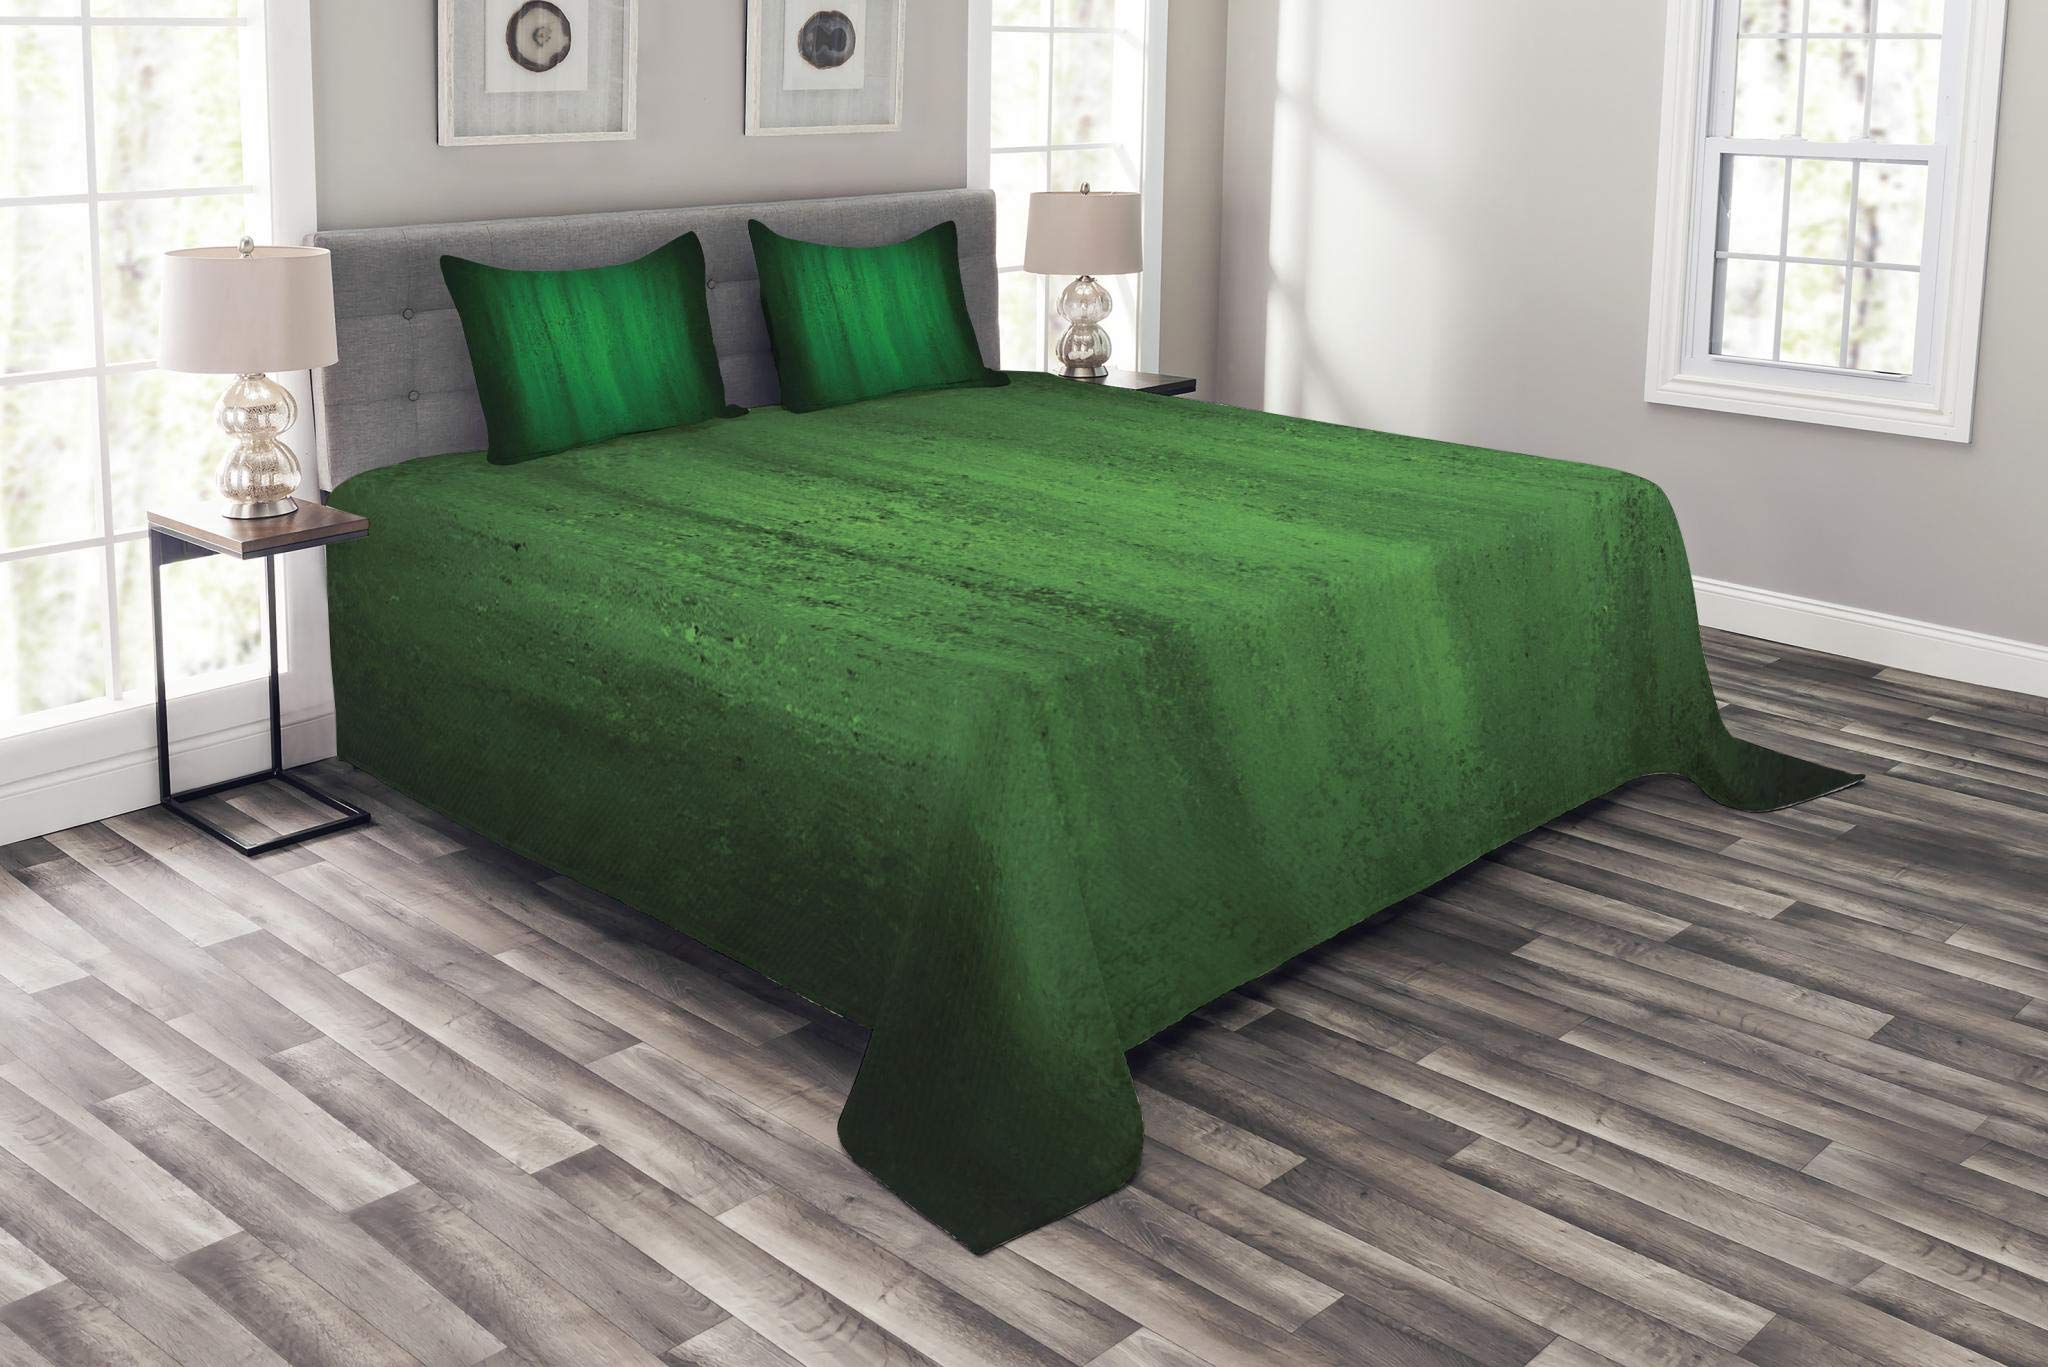 Lunarable Jade Green Bedspread Set Queen Size, Grunge Style Inspirations Worn Out Wall Pattern Monochromatic Abstract Design, Decorative Quilted 3 Piece Coverlet Set with 2 Pillow Shams, Jade Green